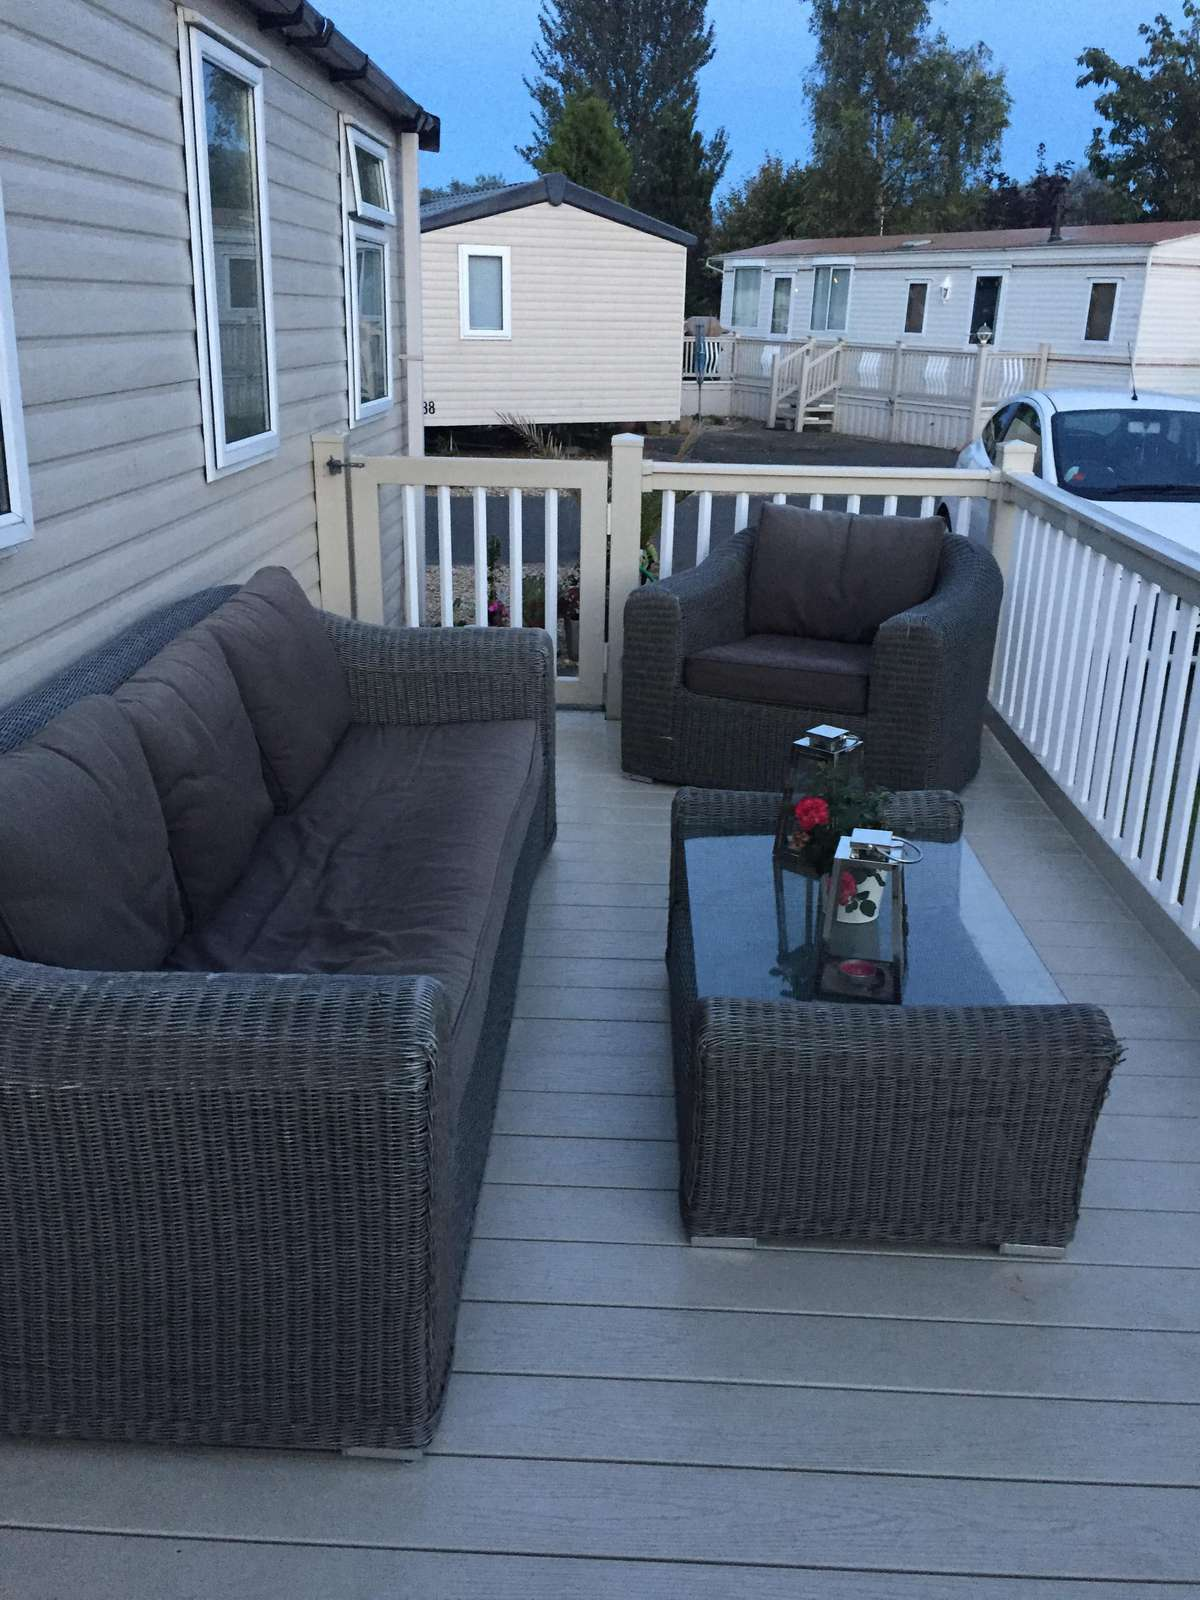 Enjoy the use of outdoor furniture and relax in the sunshine!